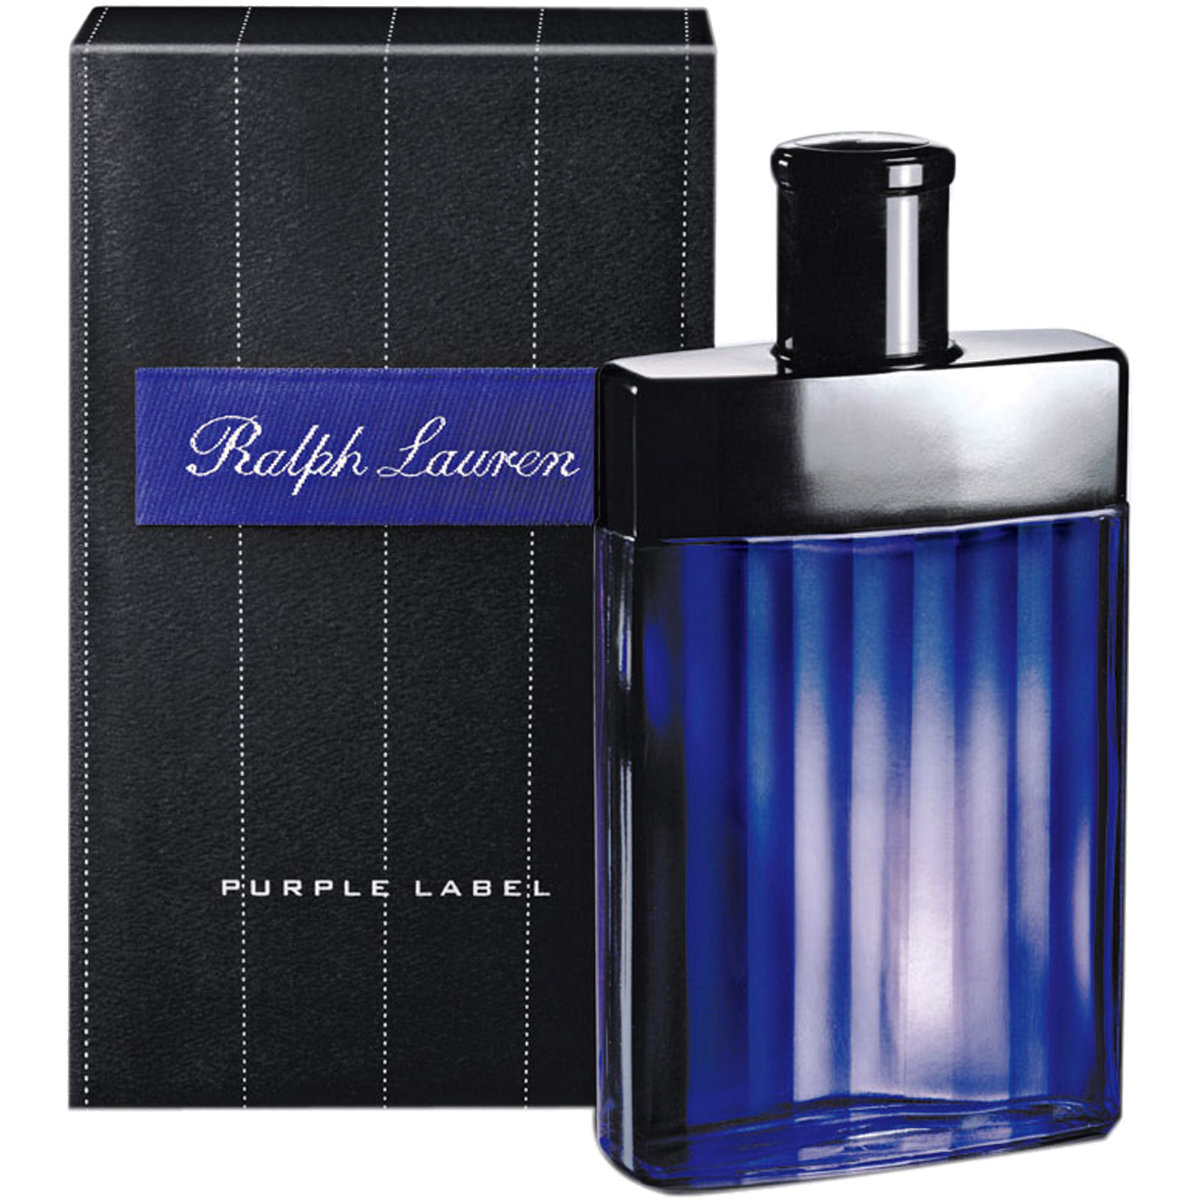 Туалетная вода Ralph Lauren Purple Label 125ml фото